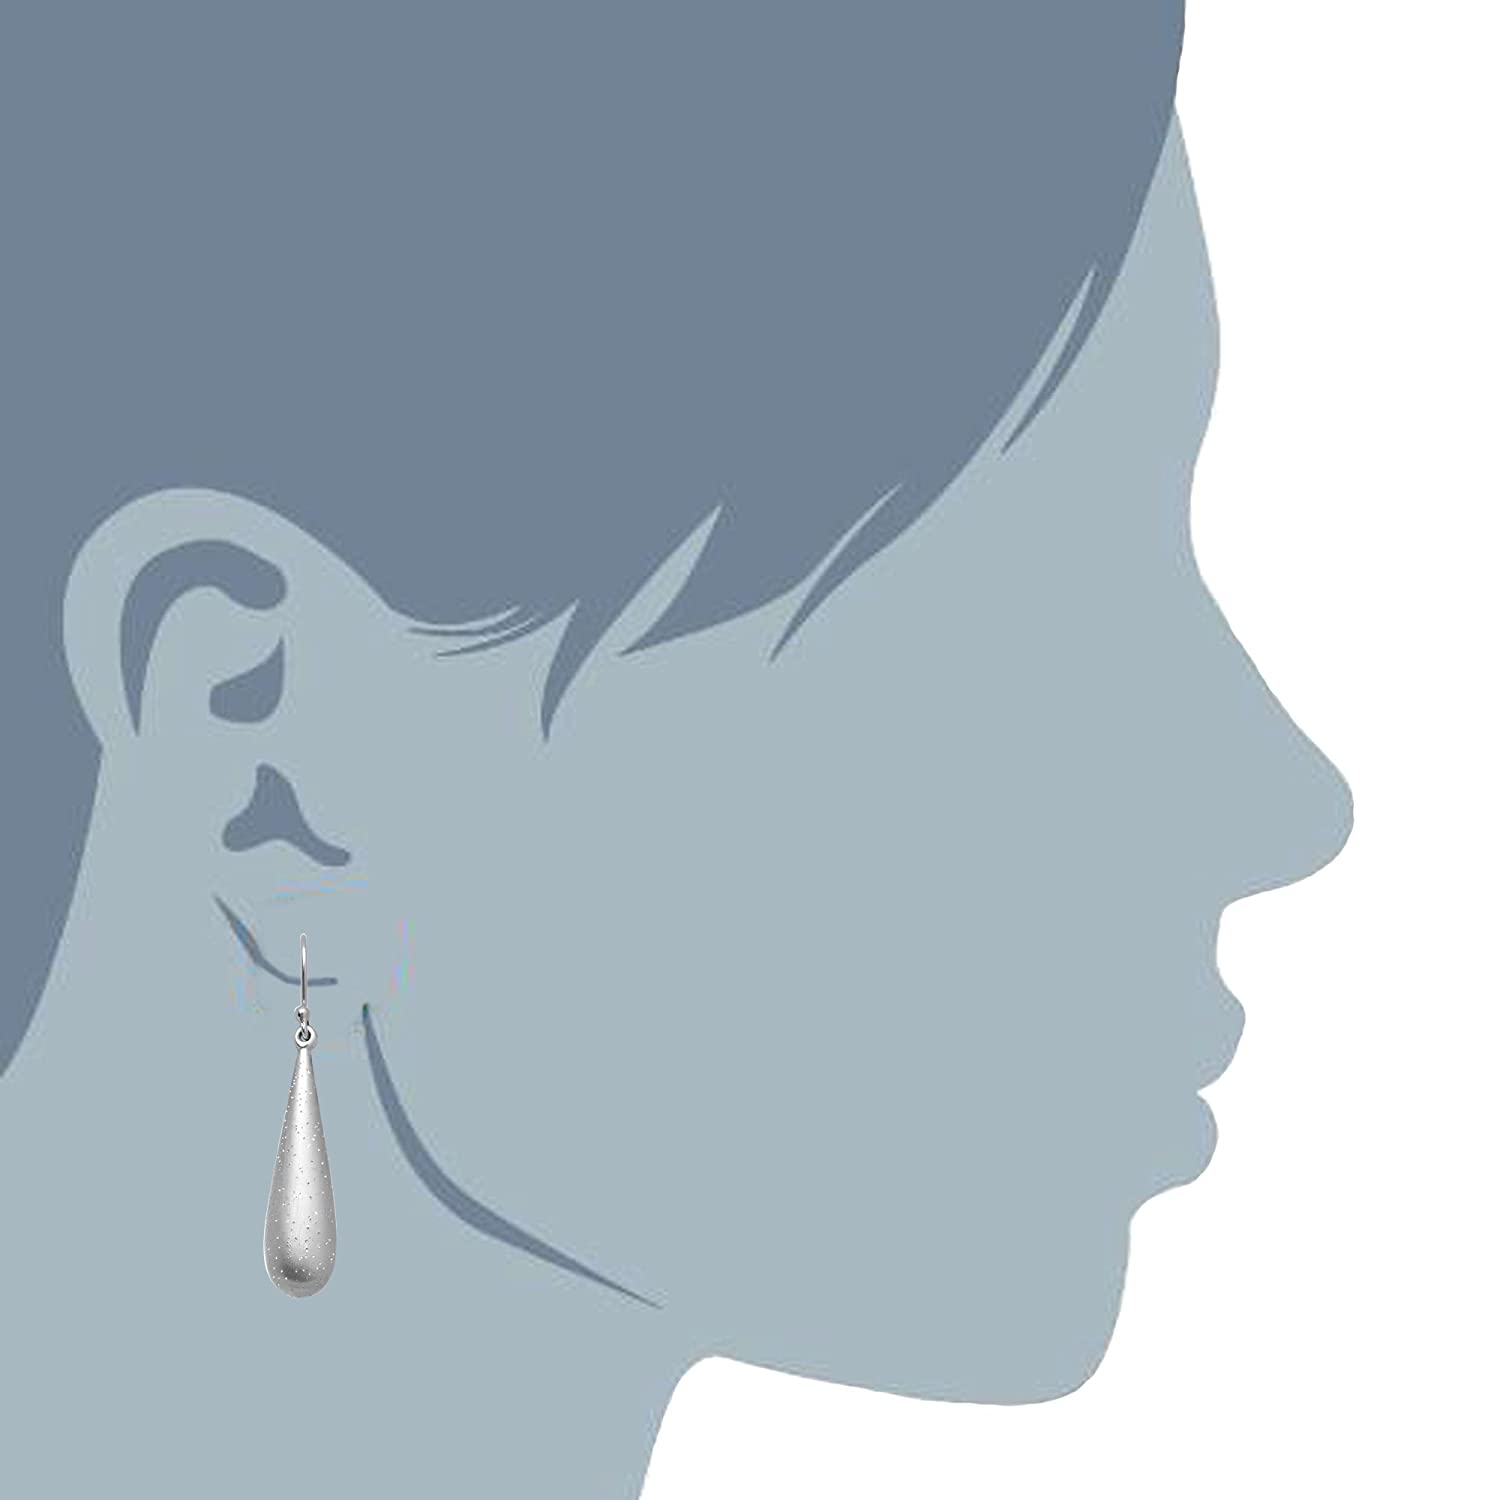 Sterling Silver Rhodium Plated With Brushed Diamond Dust Finish Tear Drop Earrings